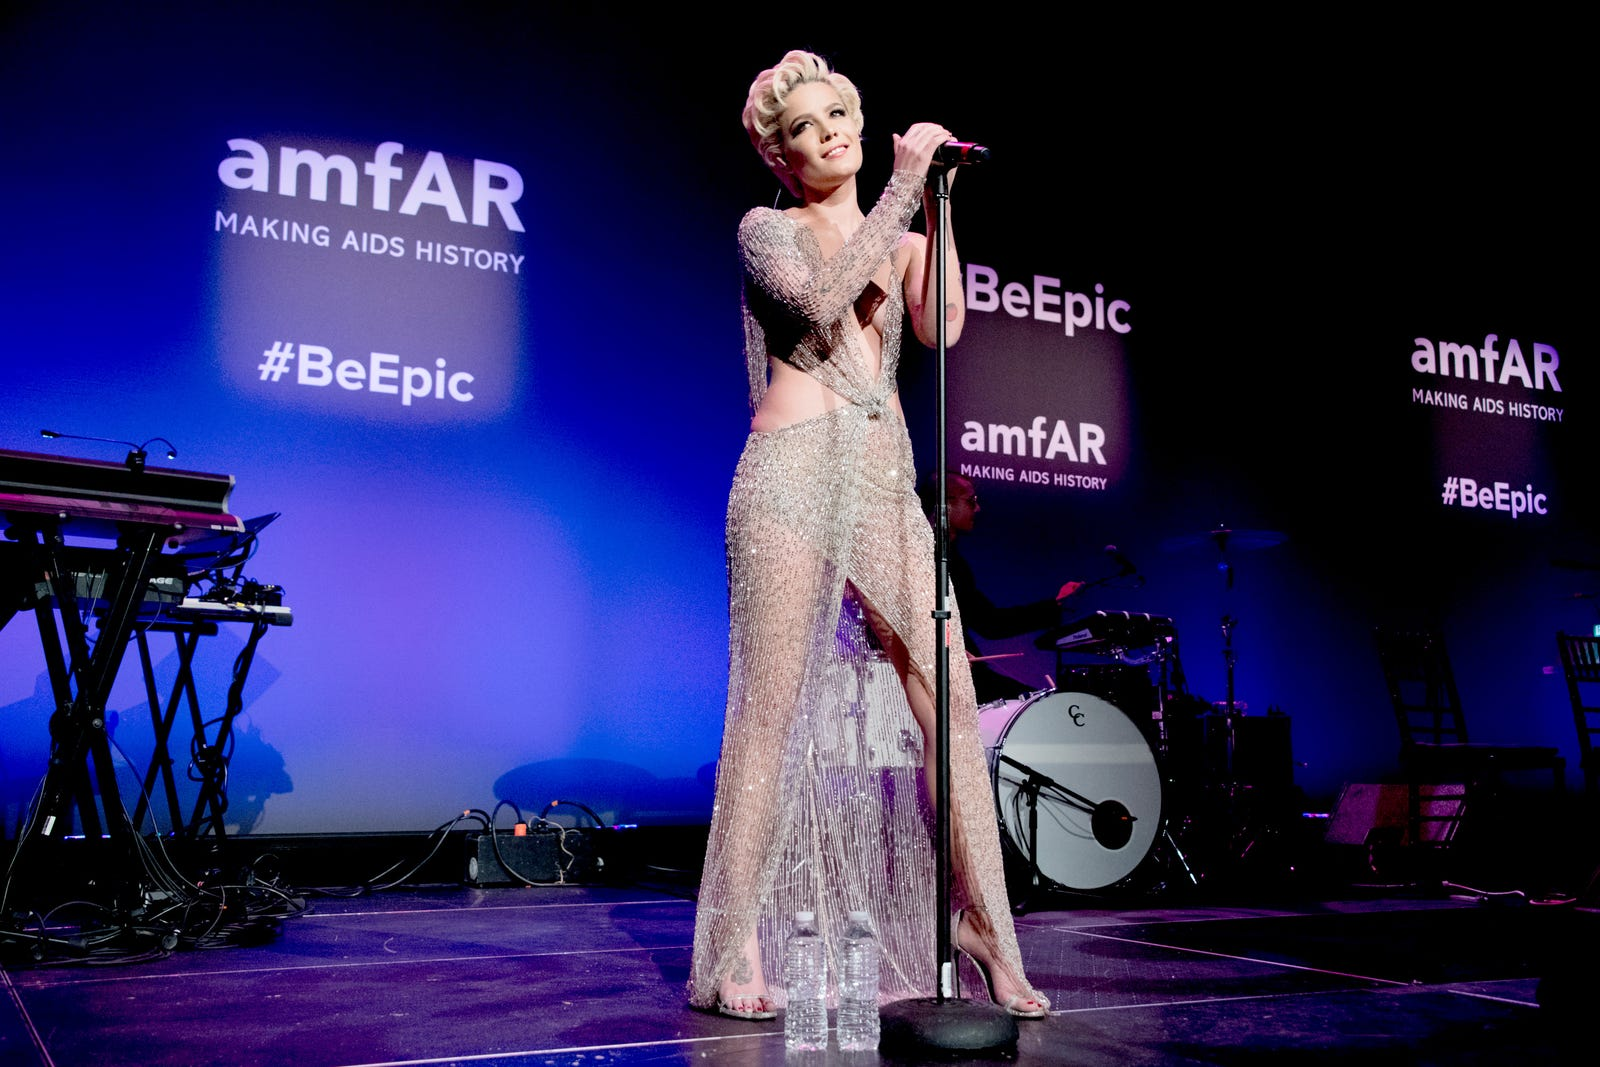 She sparkles: Halsey performs during the 2018 amfAR Gala New York at Cipriani Wall Street in New York City on Feb. 7, 2018. (Kevin Tachman/amfAR 2018/Getty Images)